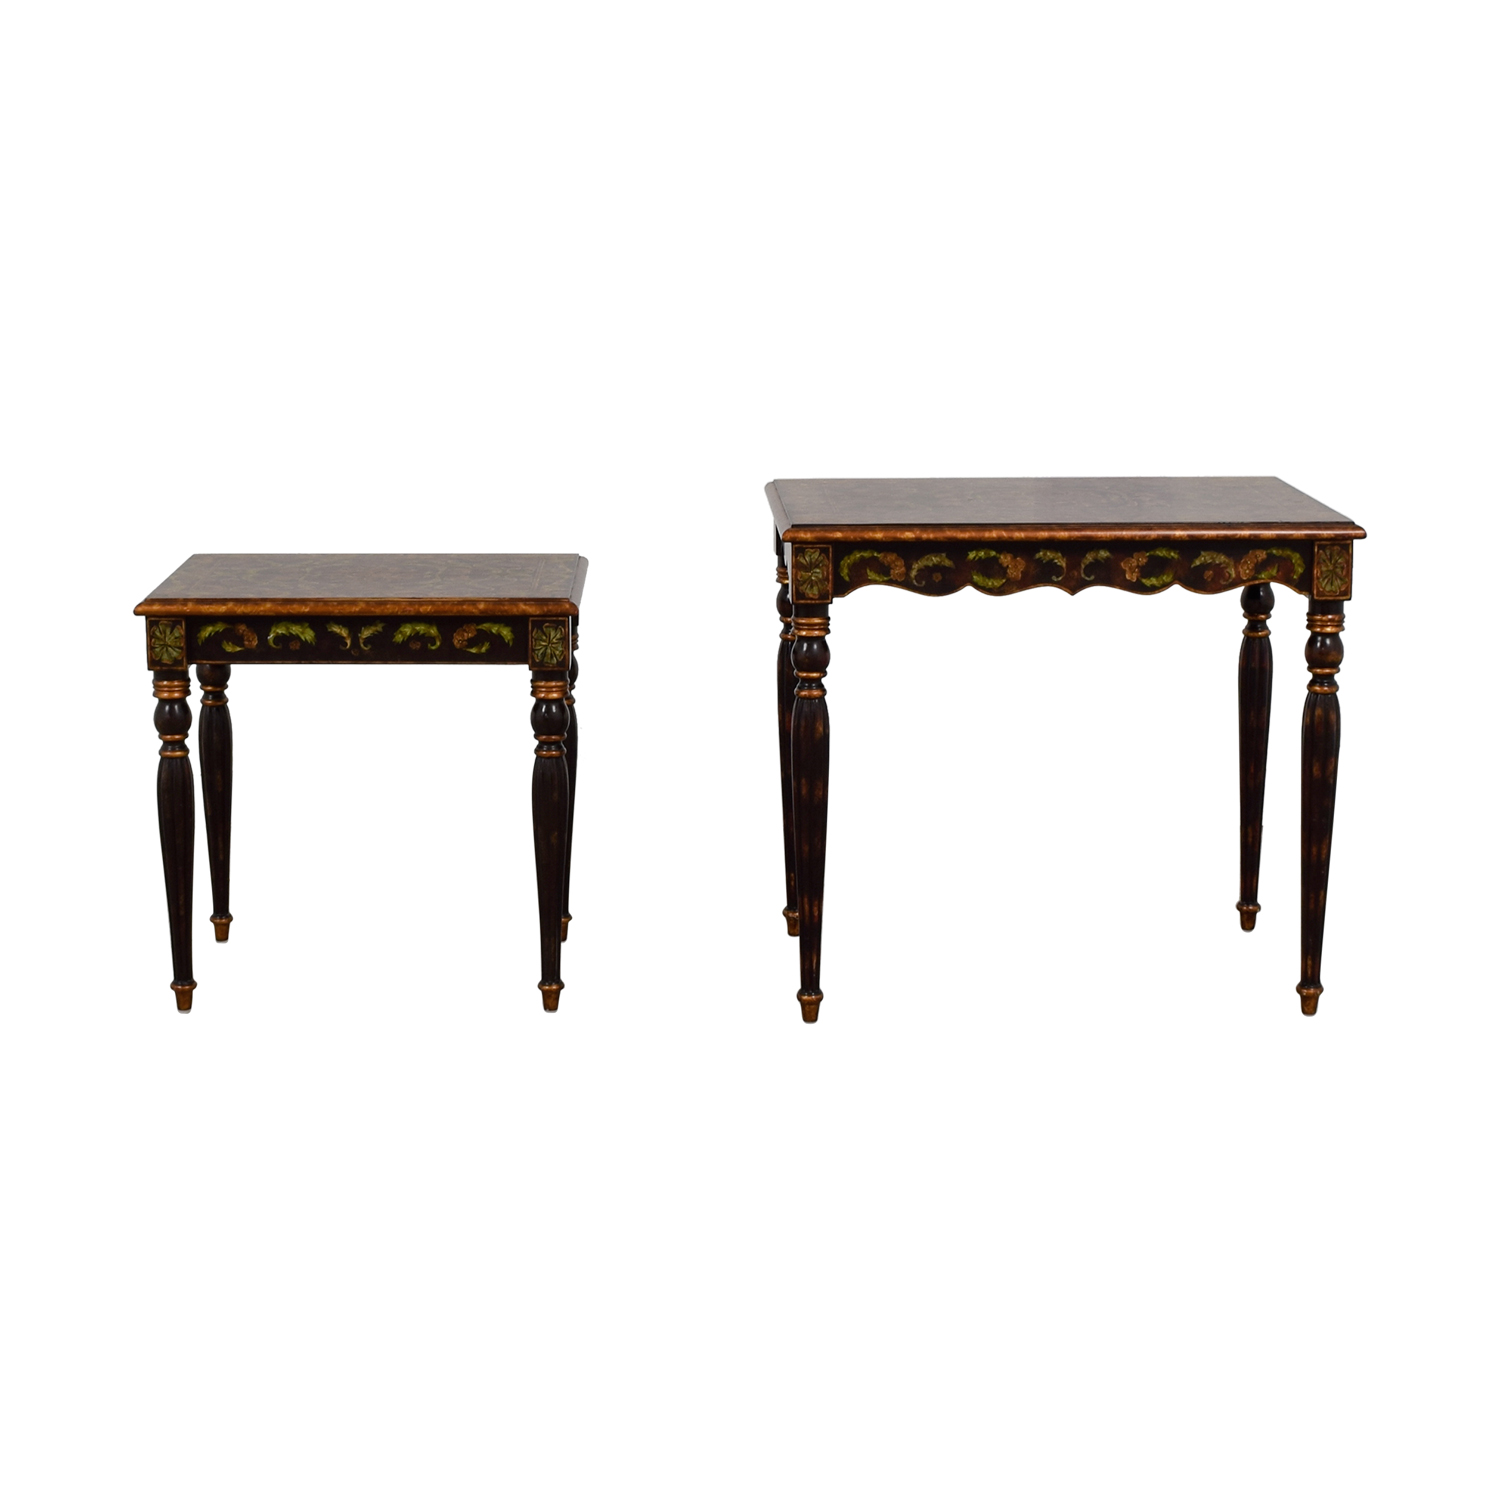 Sarried Sarried Handpainted Wood Nesting Tables Sofas